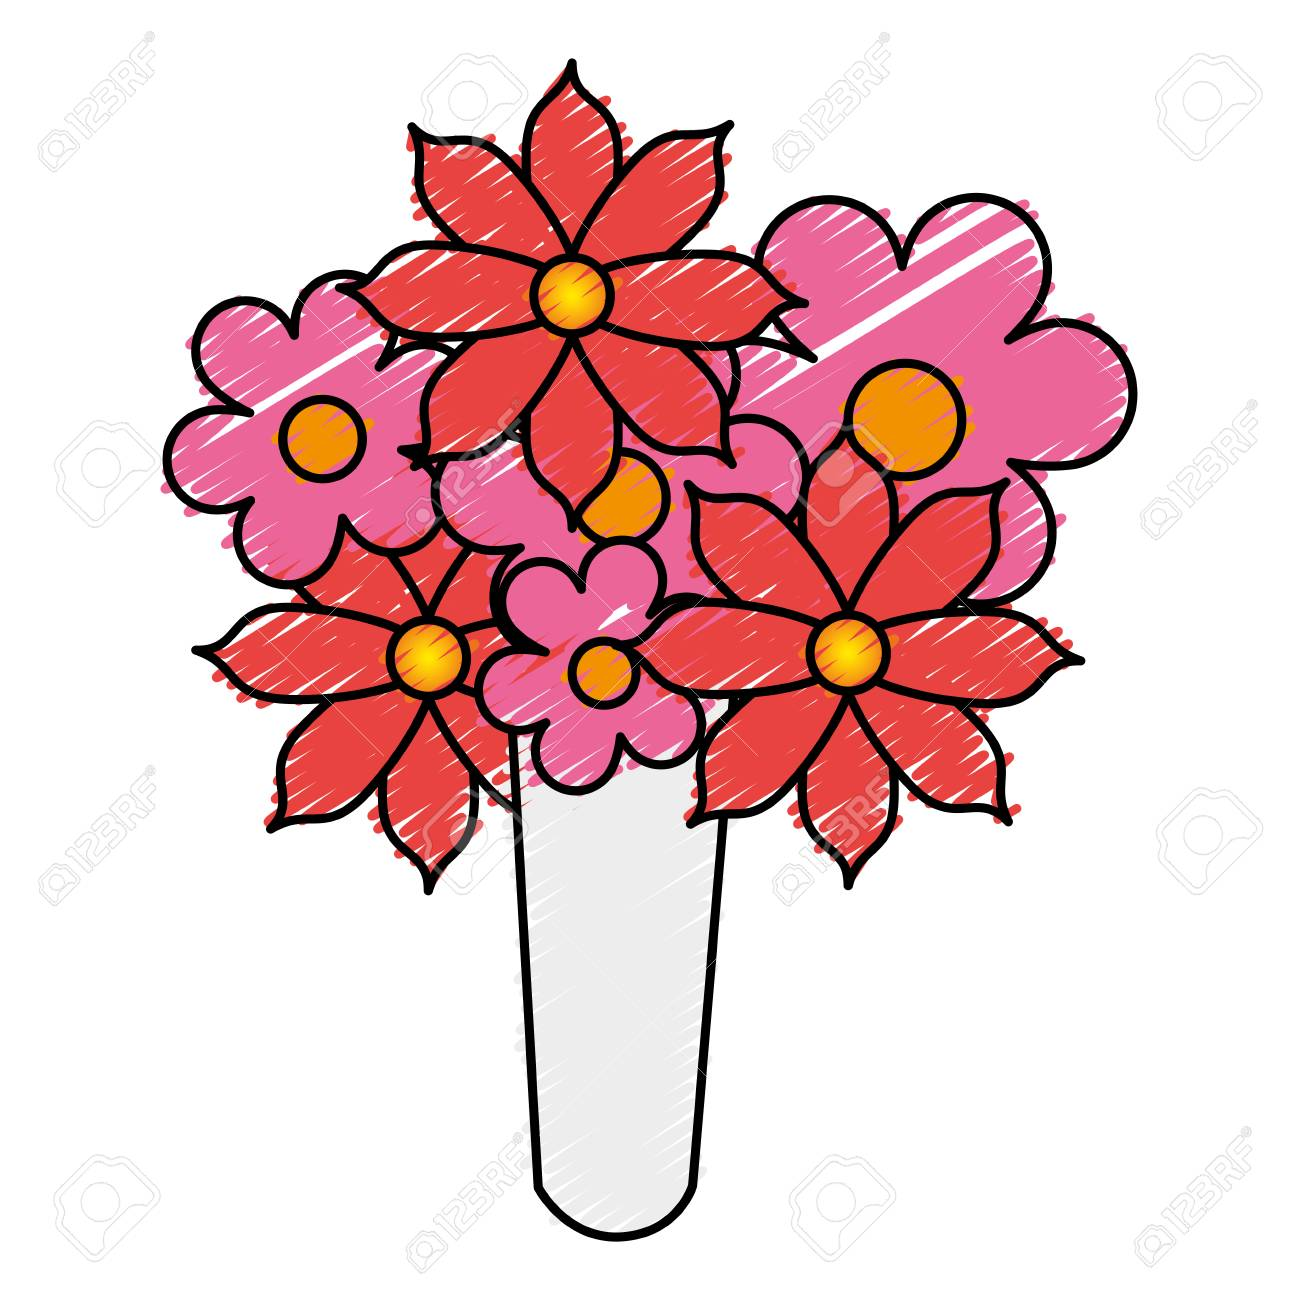 Cute Bouquet Of Flowers Vector Illustration Design Royalty Free